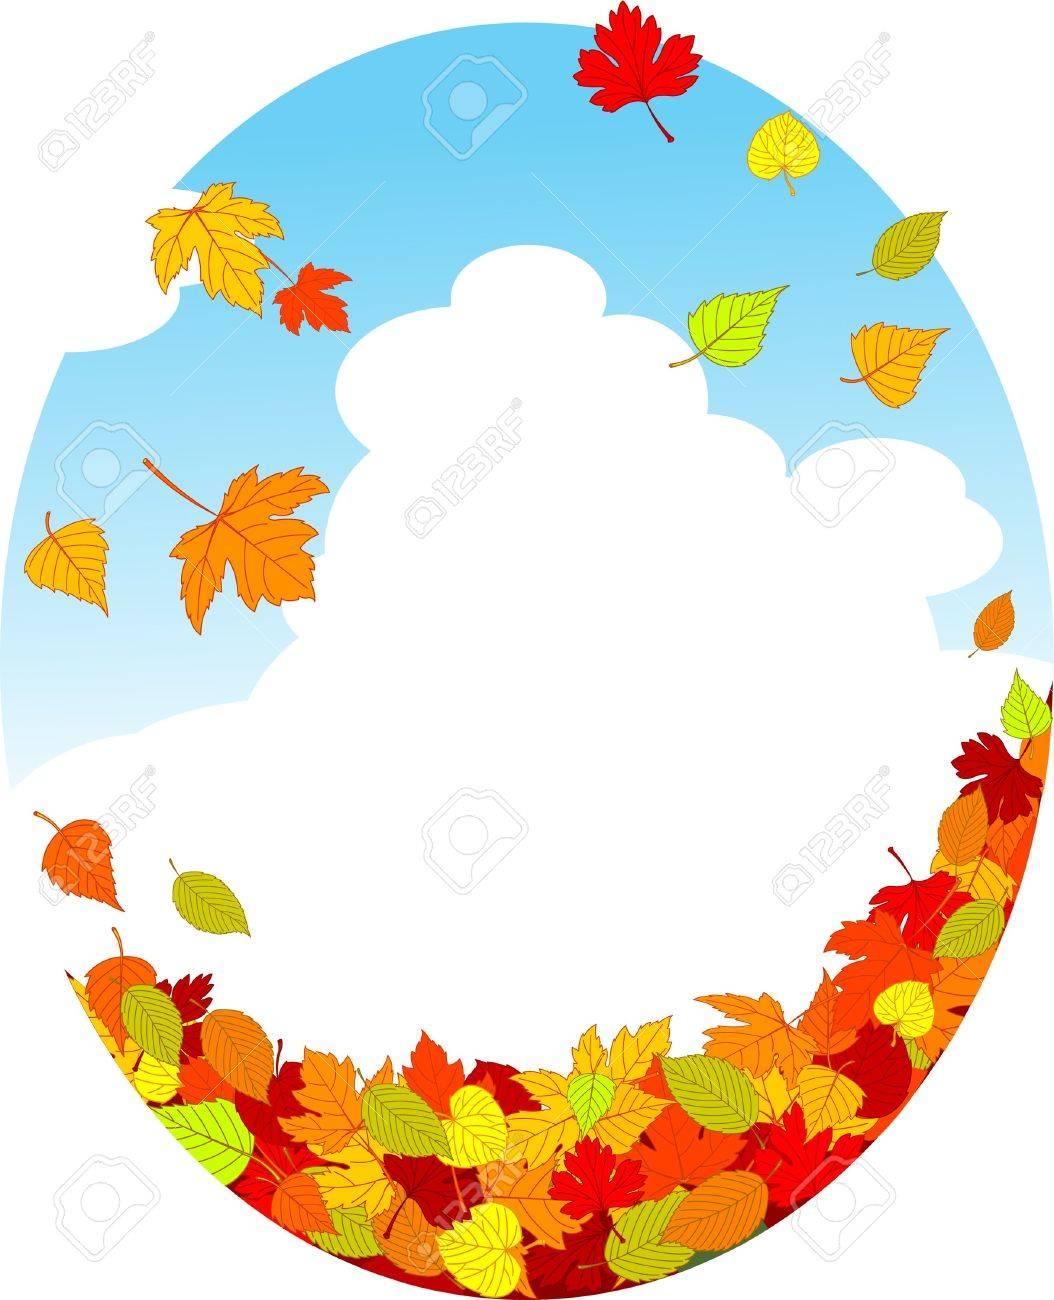 Autumn background with falling leaves Stock Vector - 8008628